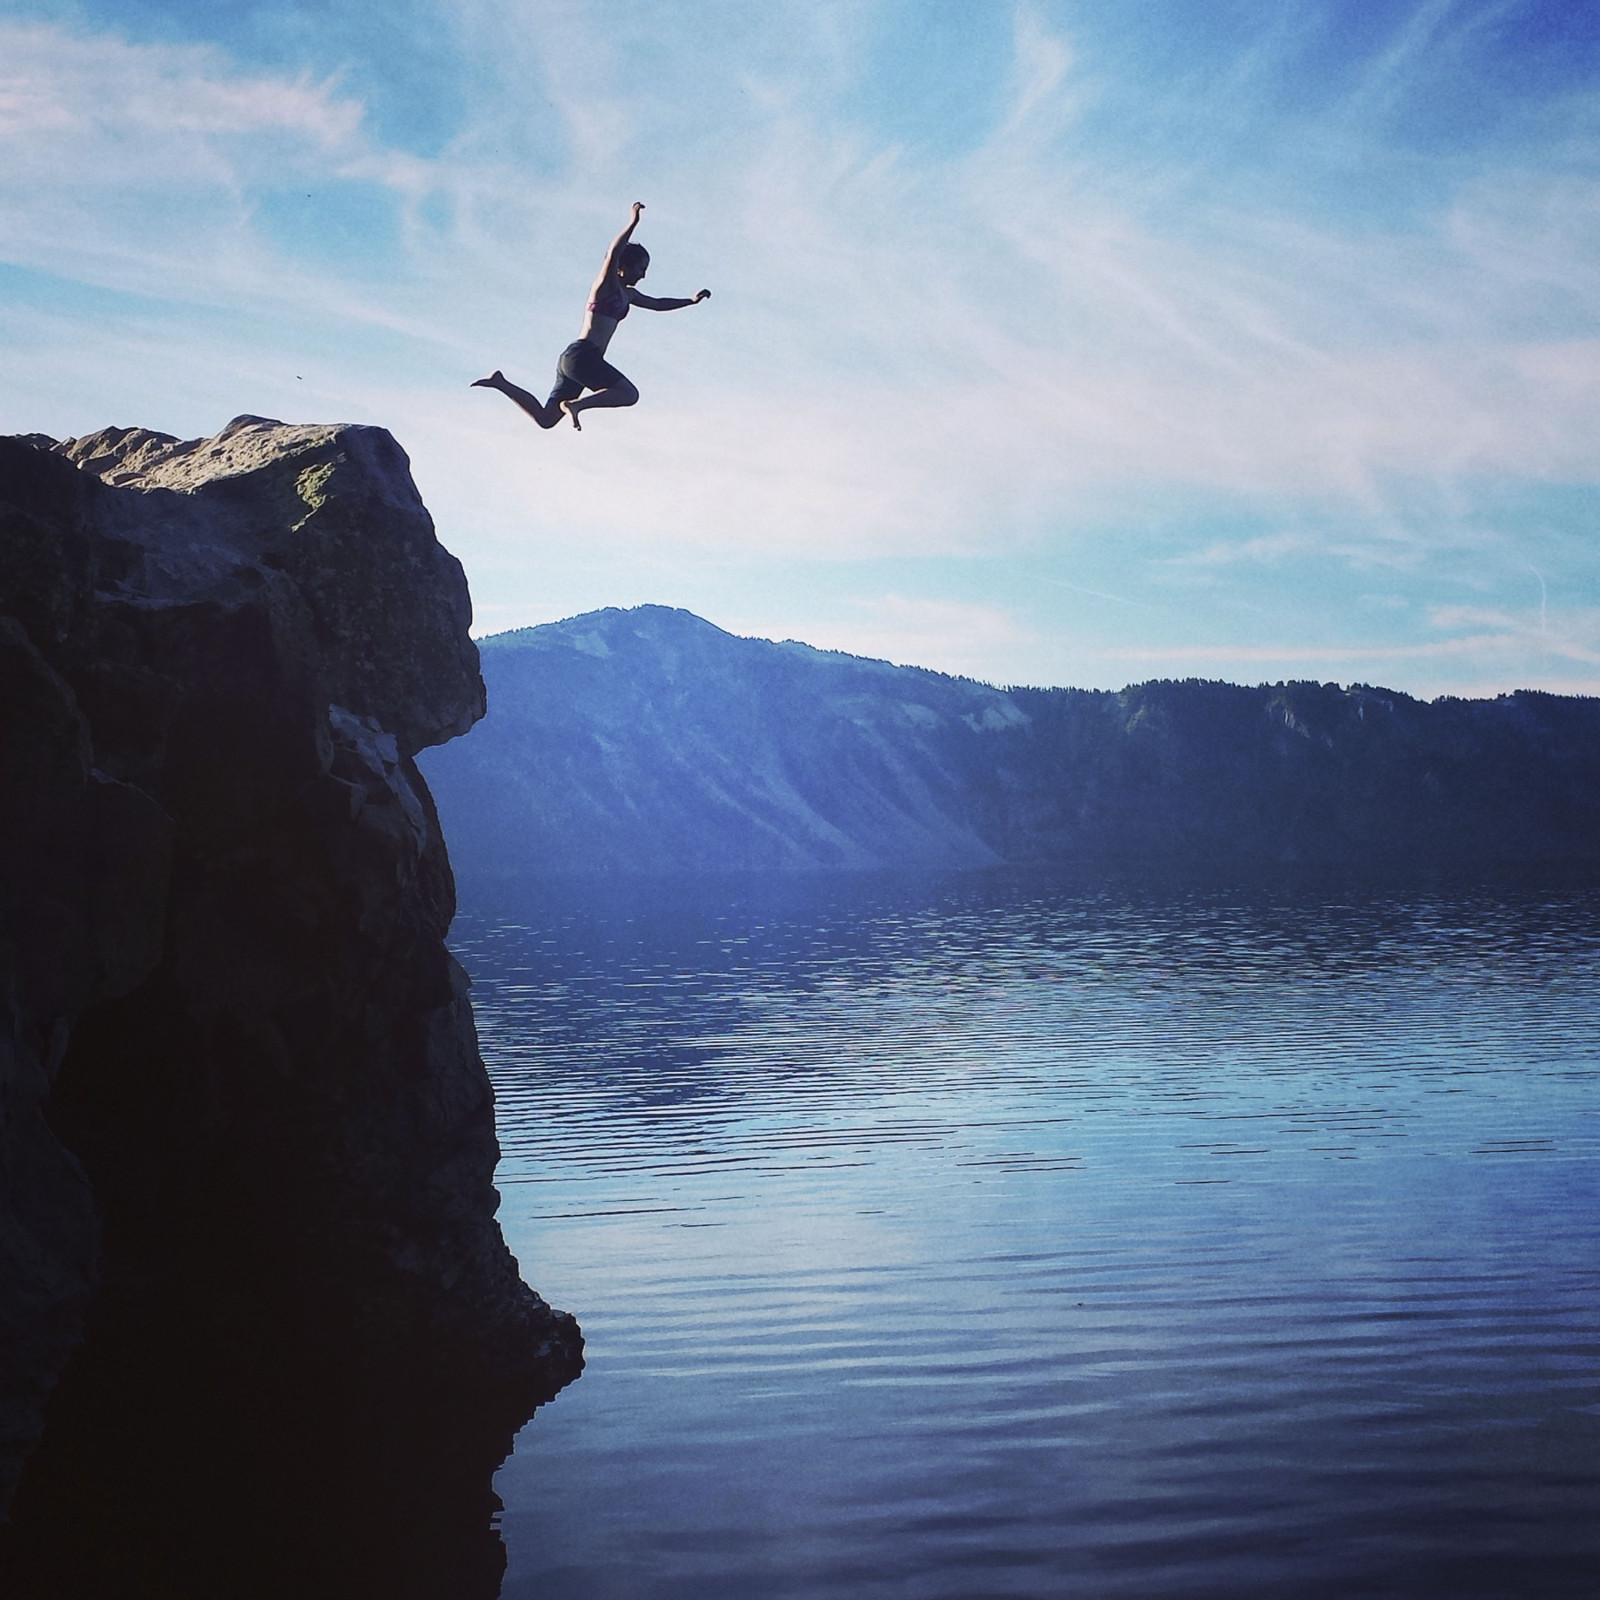 Taking the plunge into the chilly waters of Crater Lake, Ore. (Cristina Woodworth)